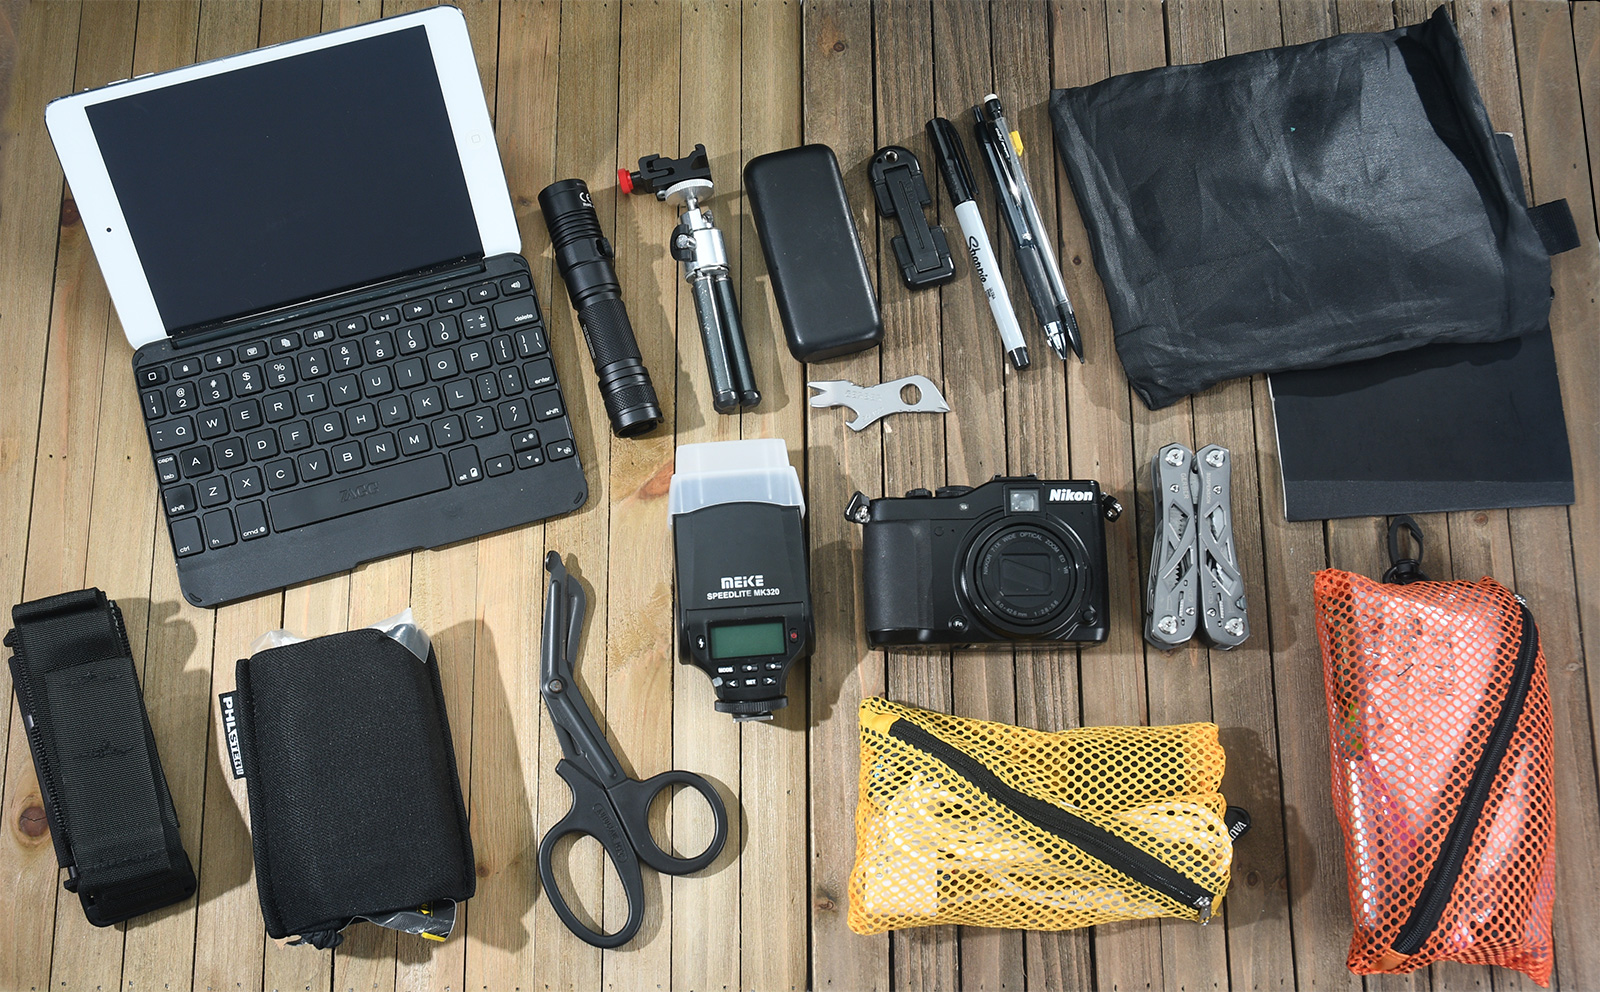 Everyday carry gear for a content creator